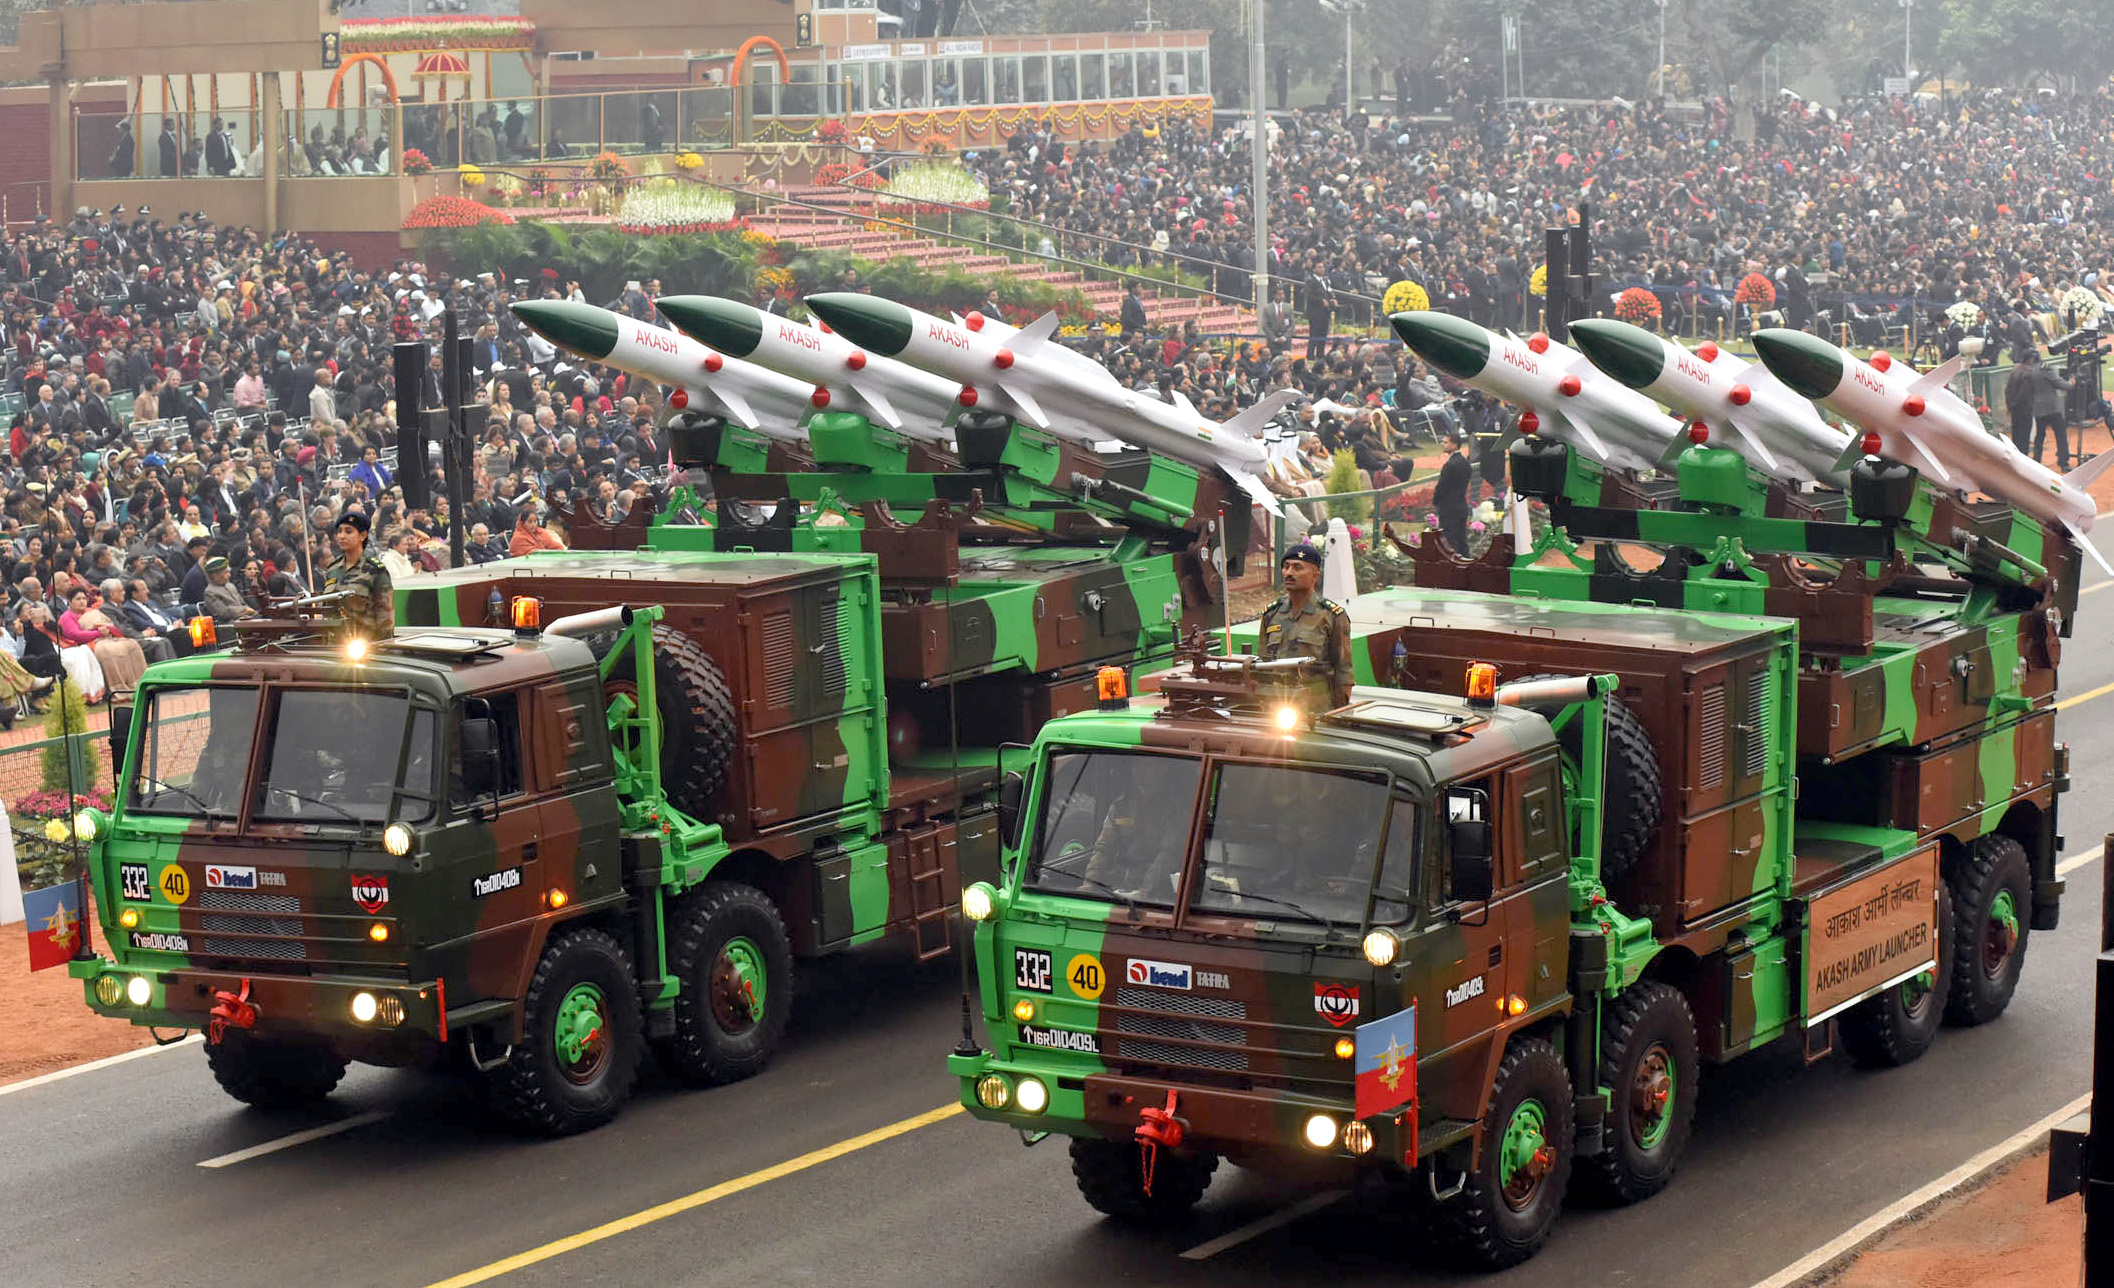 Akash Army Launcher passes through the Rajpath, on the occasion of the 68th Republic Day Parade 2017, in New Delhi on January 26, 2017; Source - DPR.